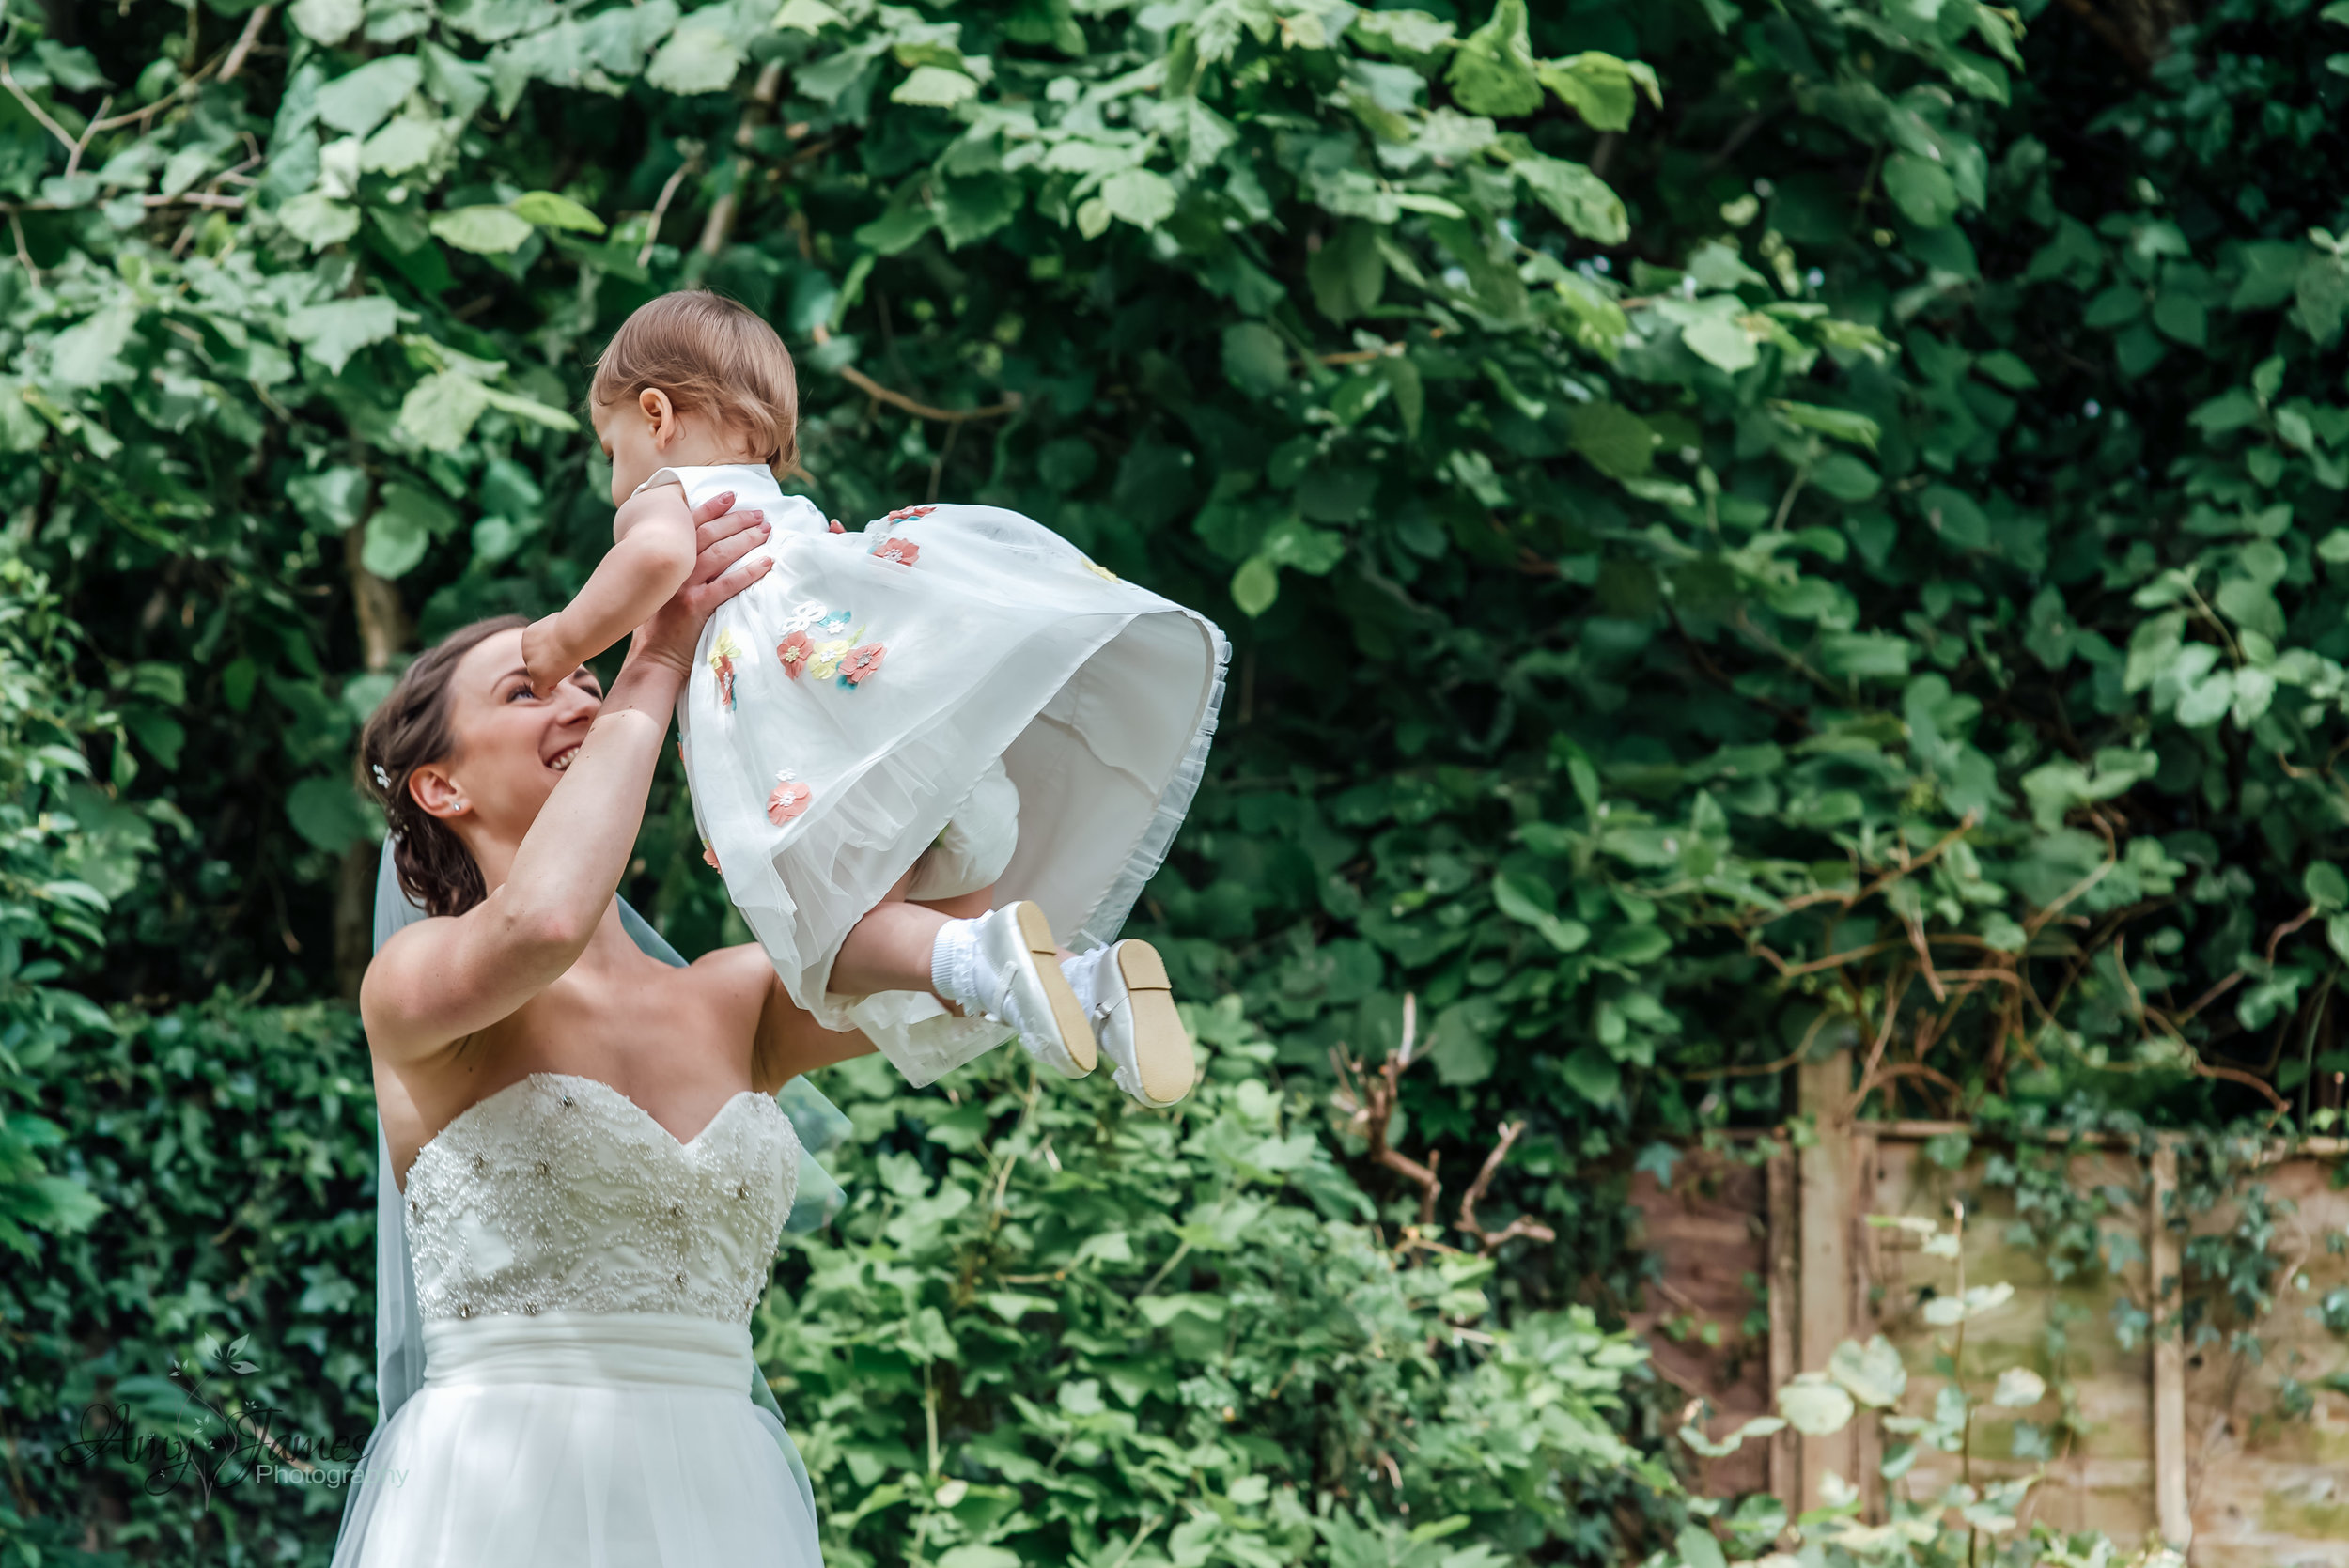 Bride throwing flower girl into the air - Amy James Photography - Wedding photographer Hampshire - Taplins Place Wedding